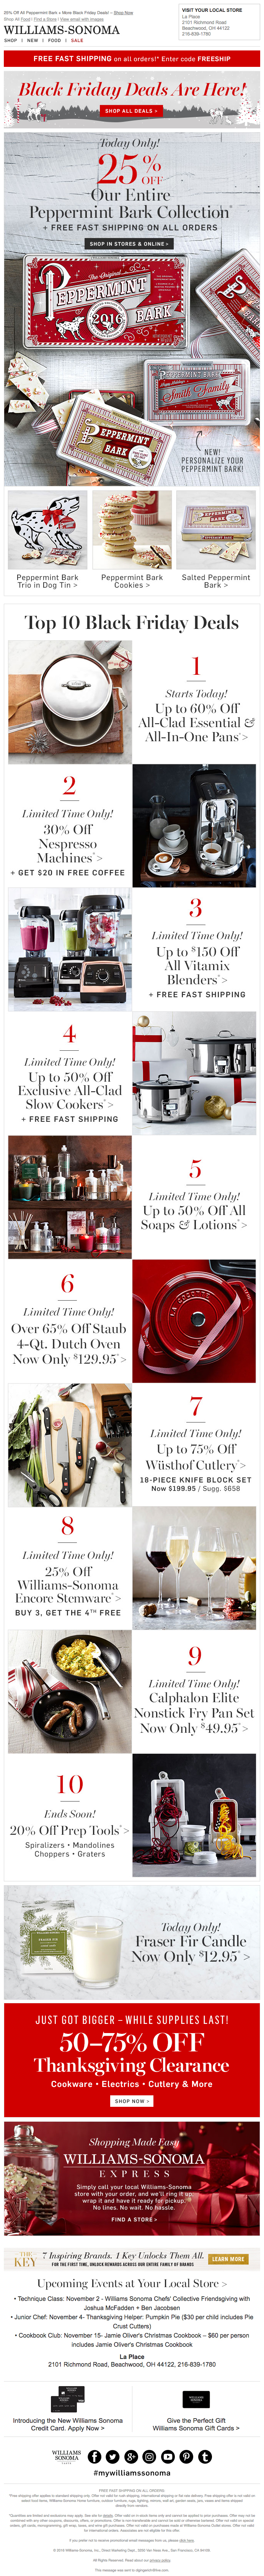 Williams Sonoma Black Friday Email